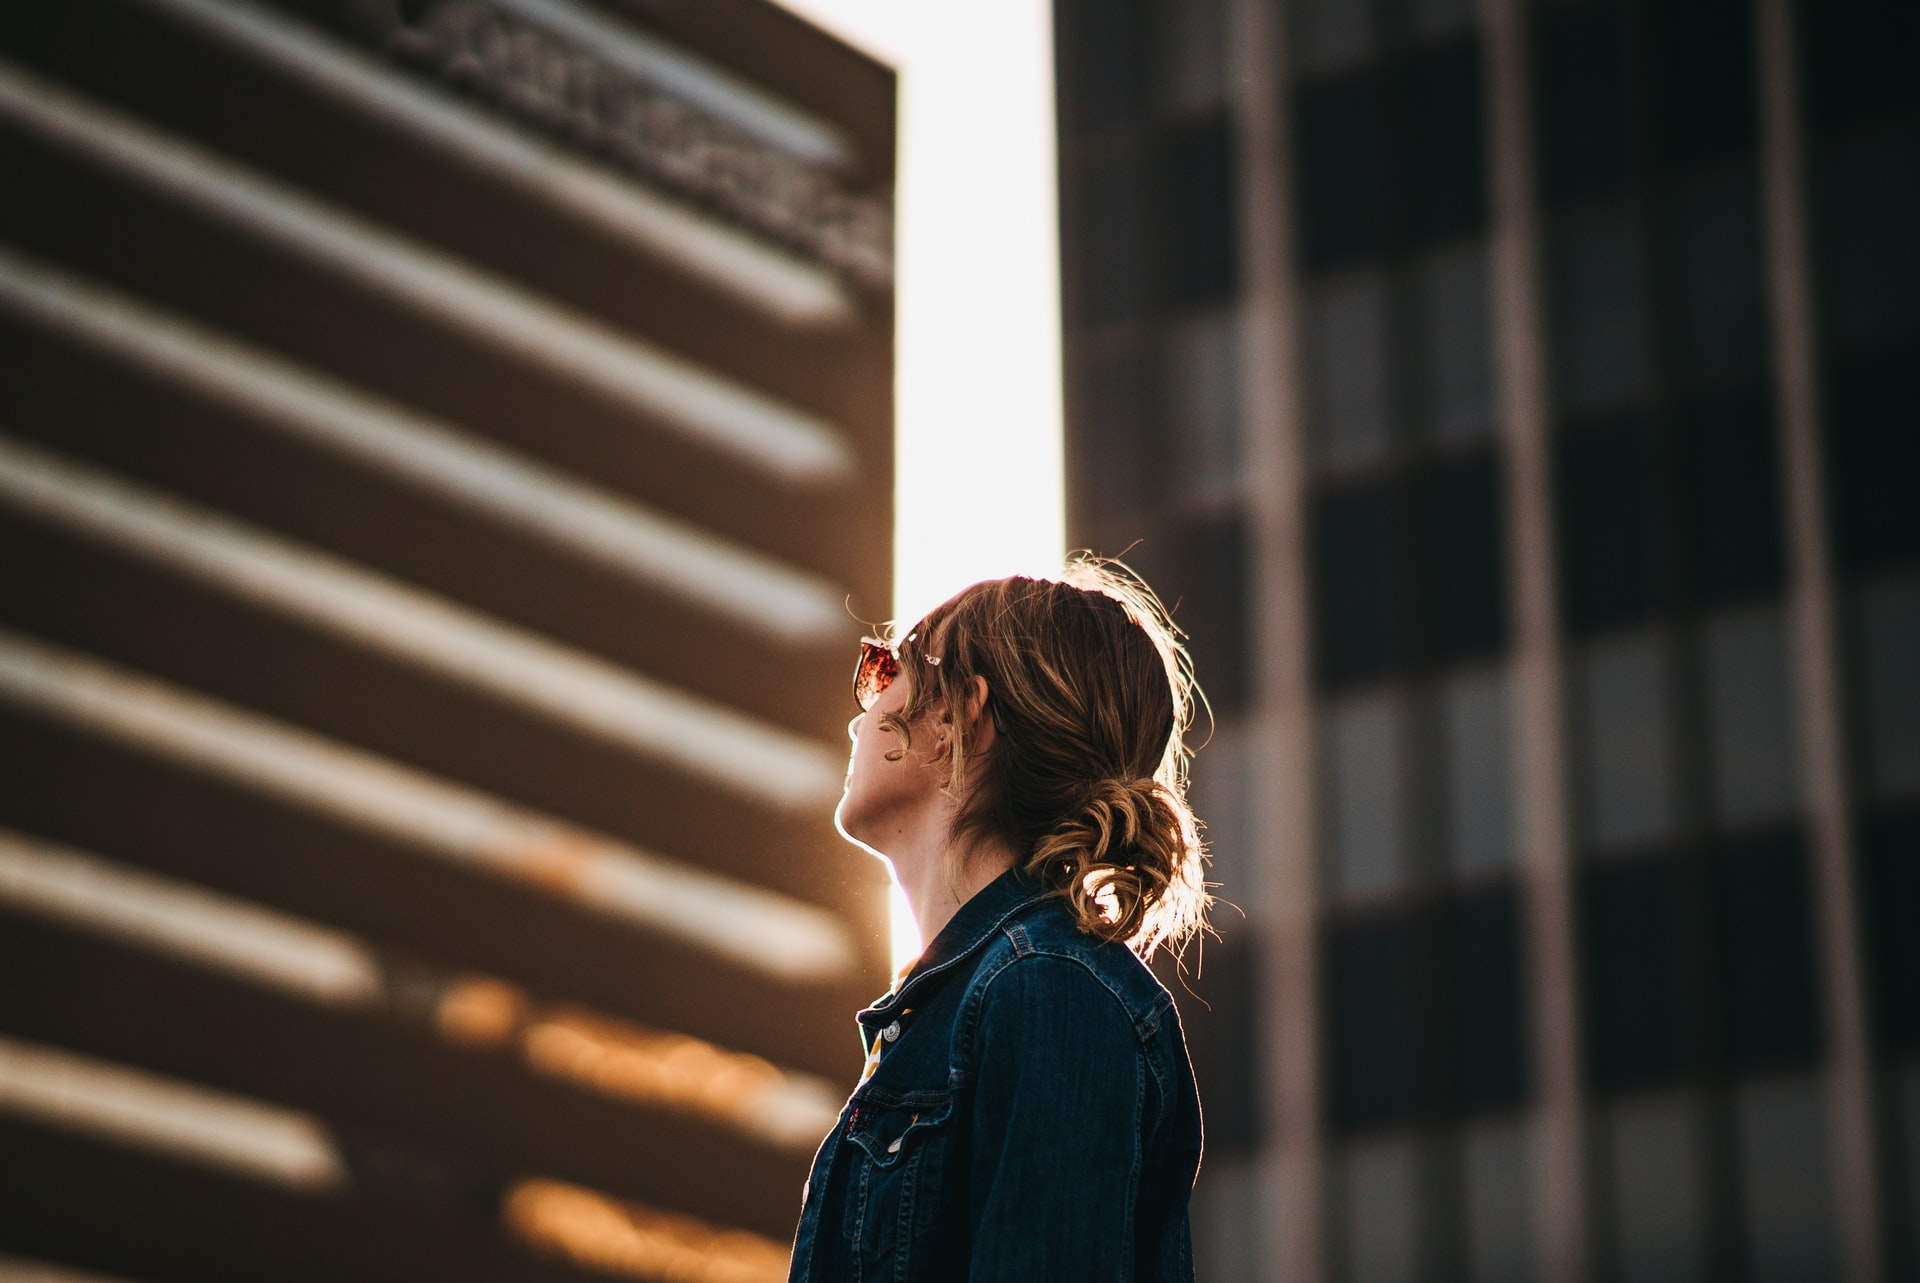 A woman in a jean jacket looks up at a tall building.